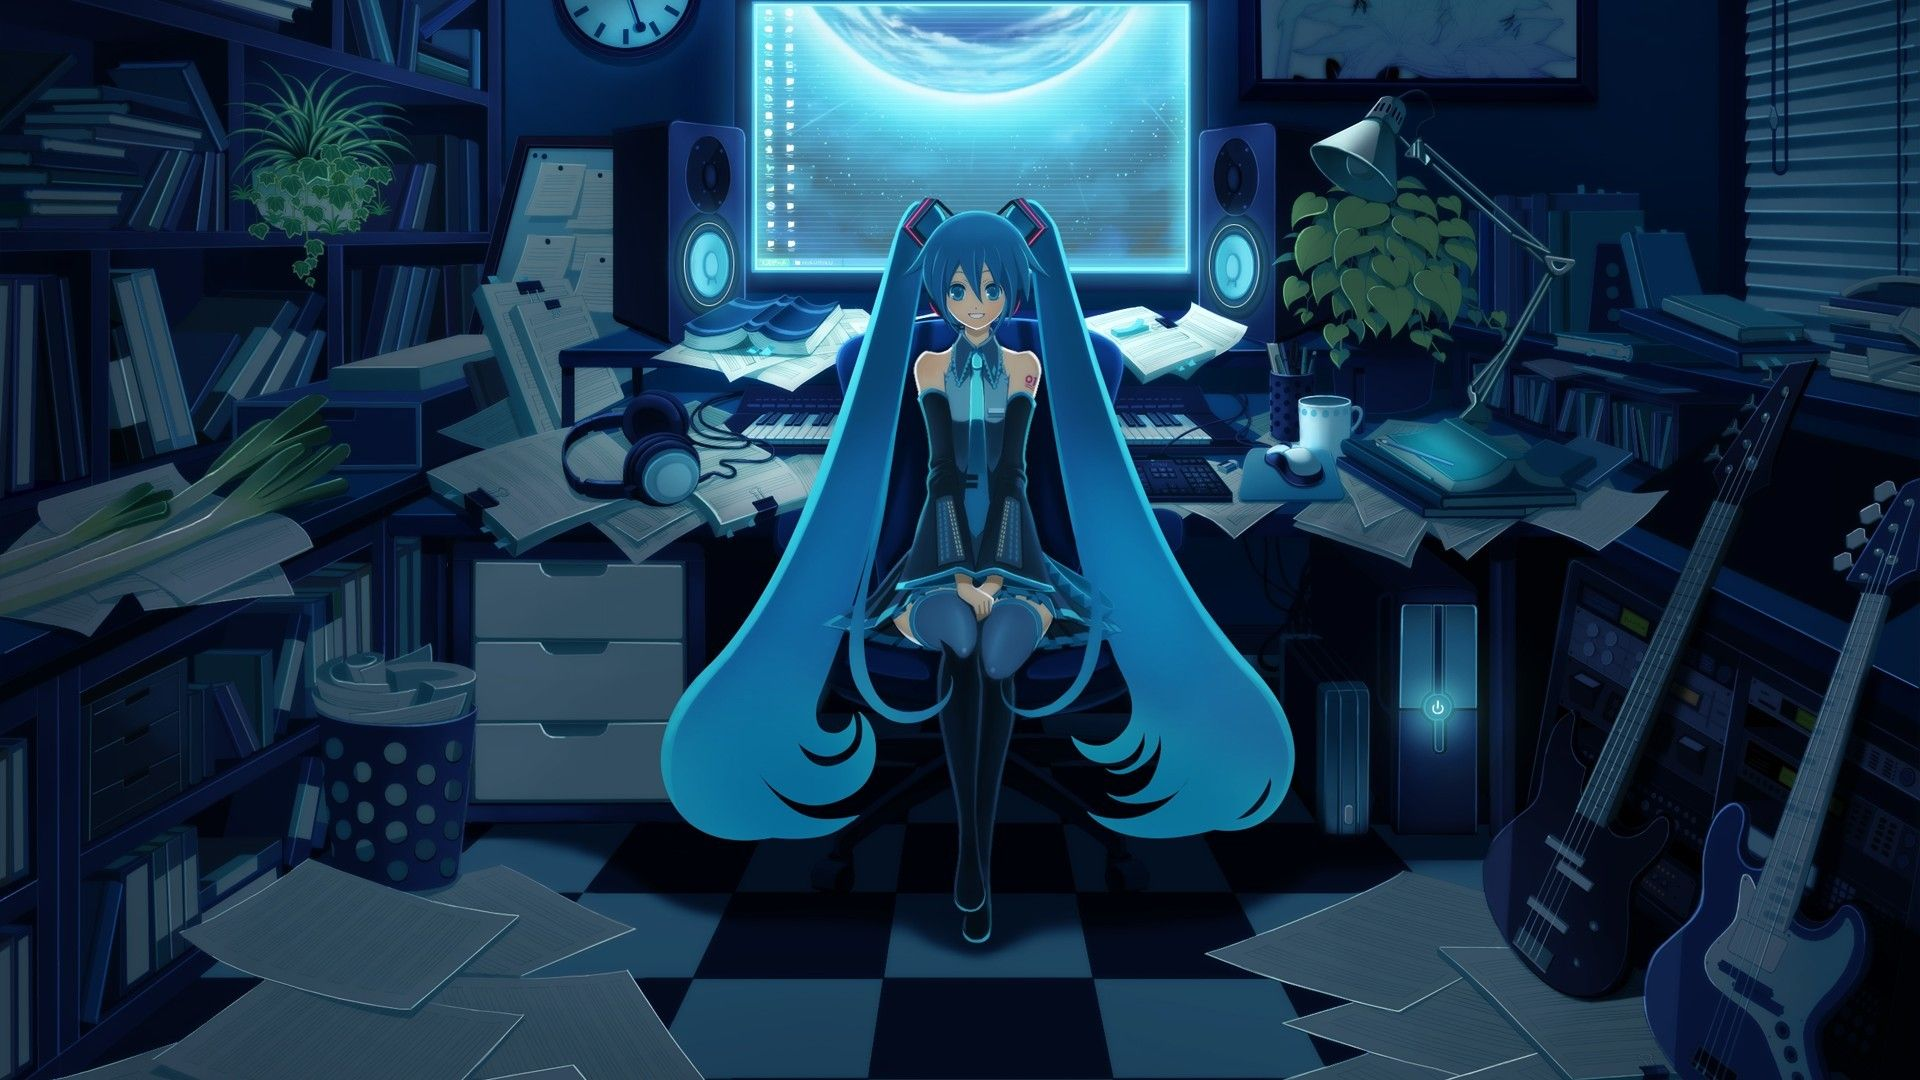 Gamer Cute Anime Wallpapers For Girls If you're looking for the best aesthetic tumblr backgrounds then wallpapertag is the place to be. gamer cute anime wallpapers for girls